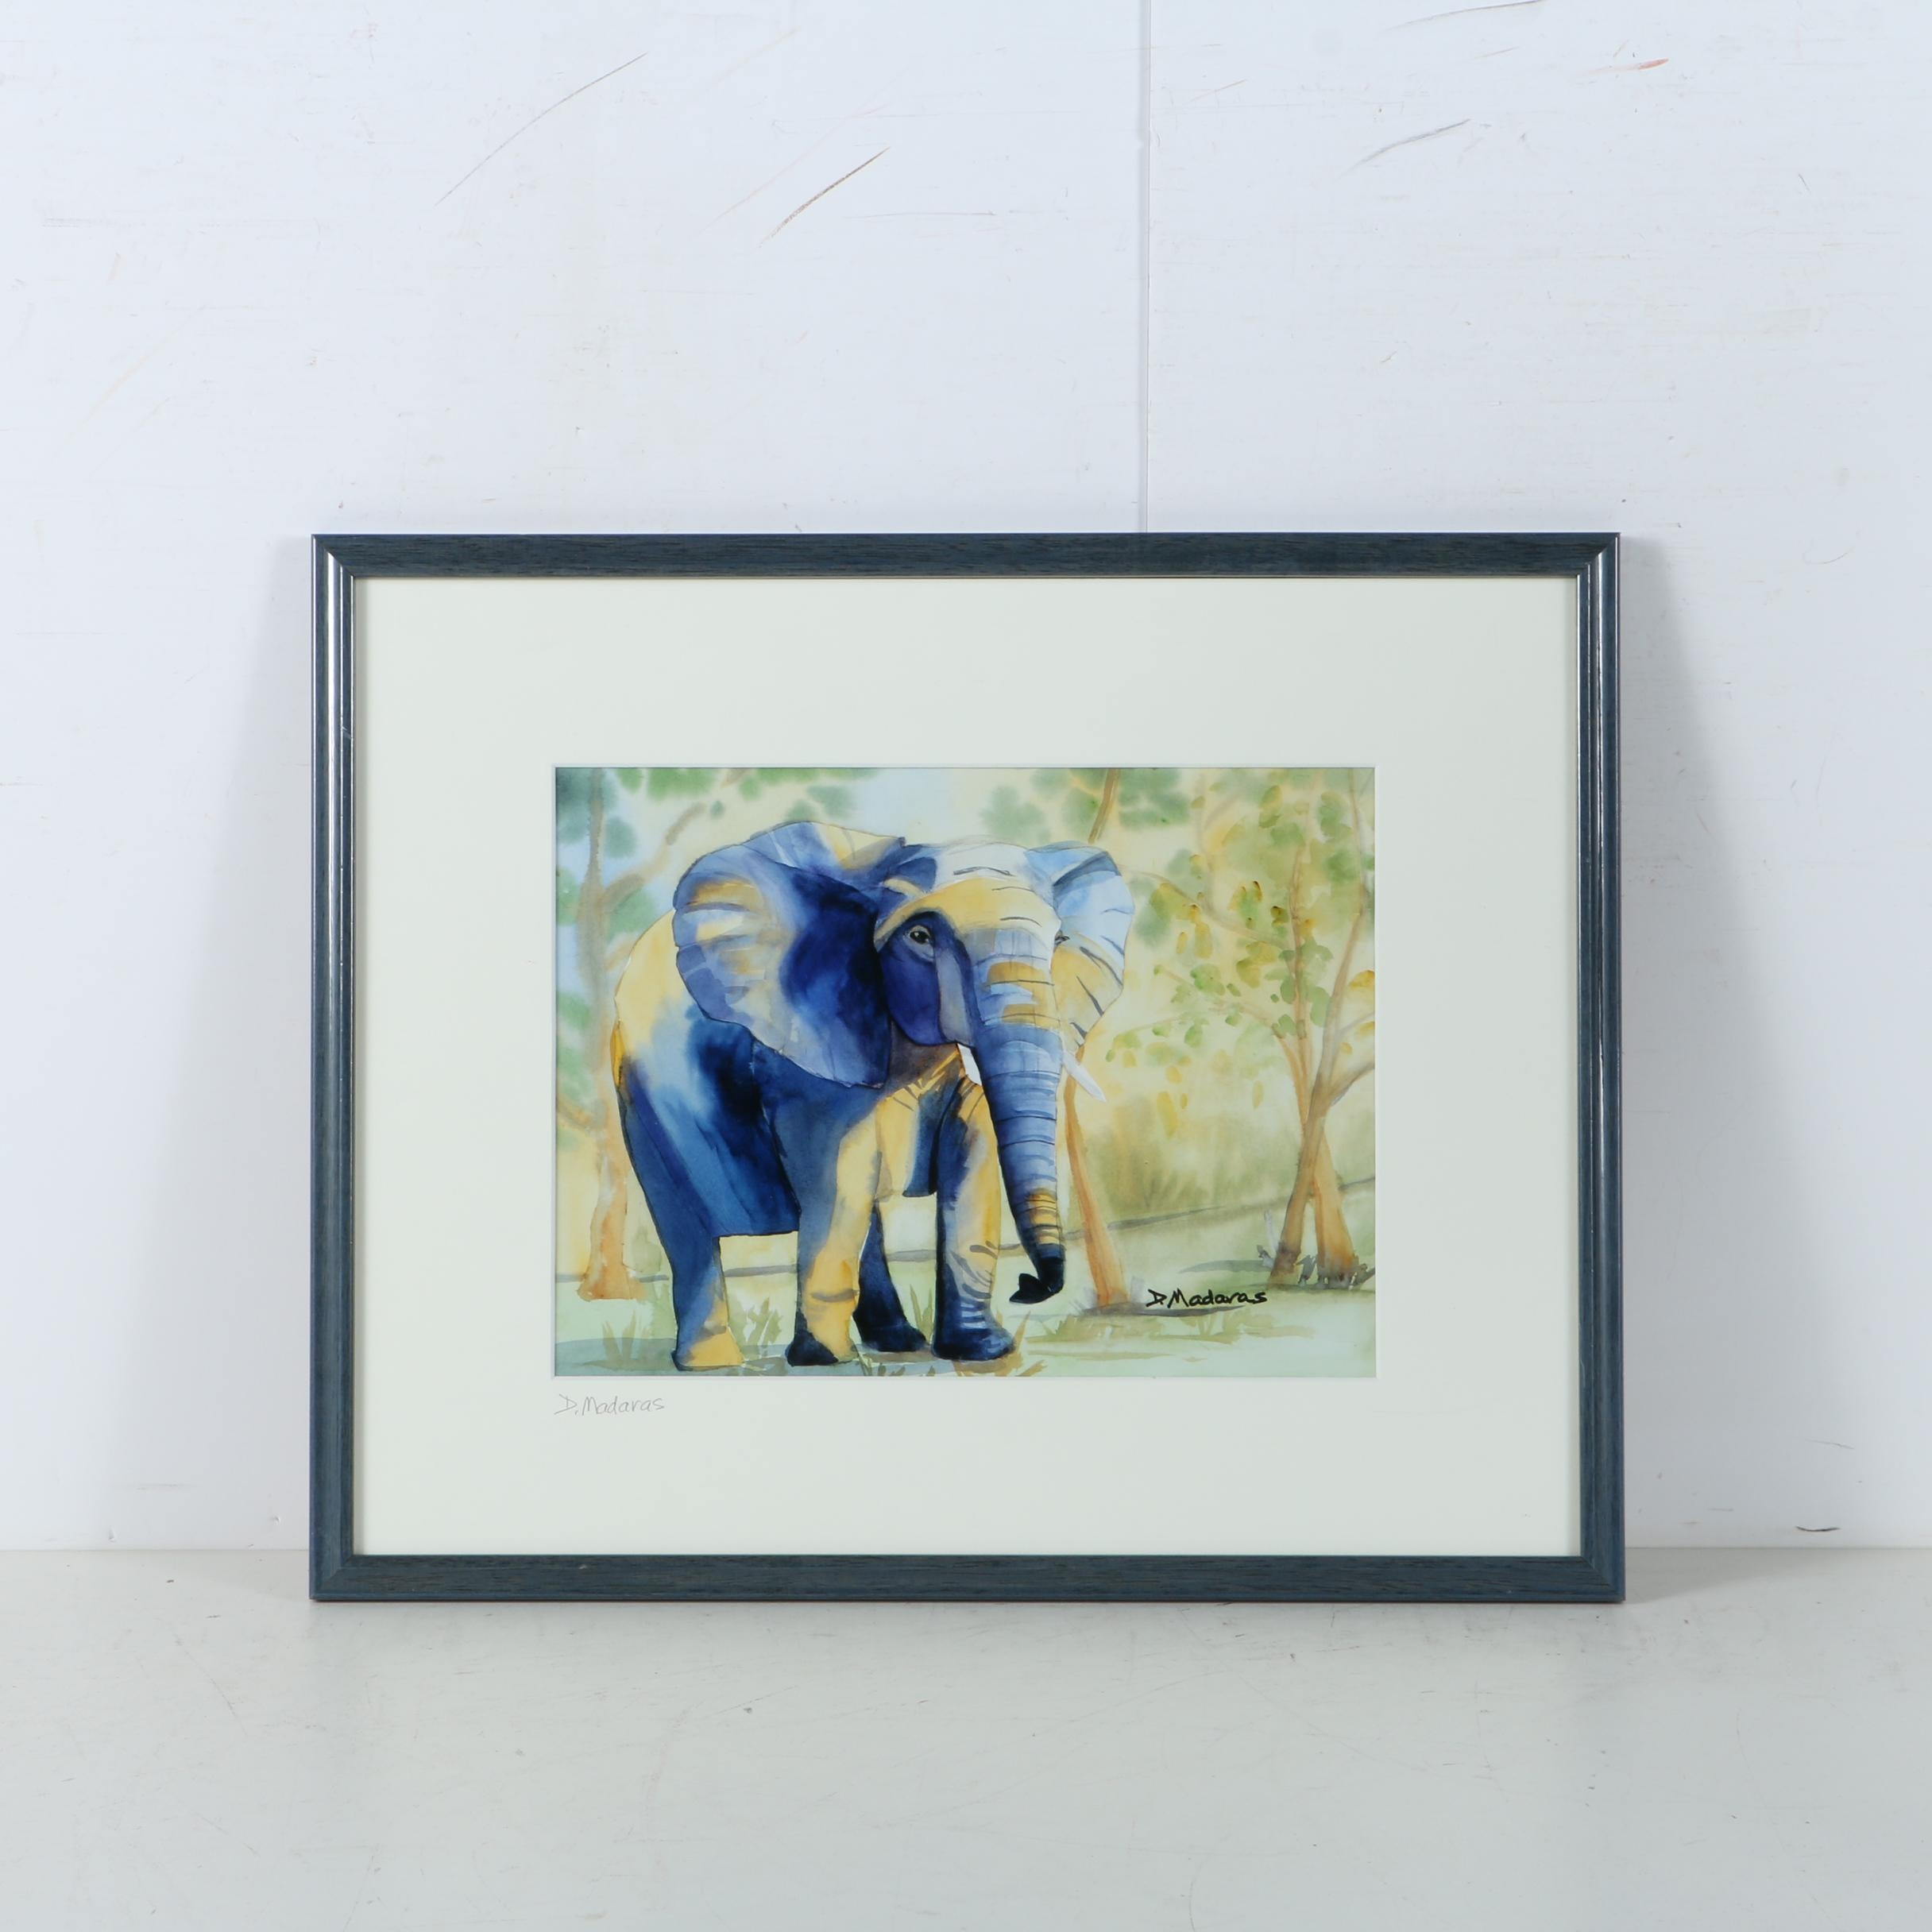 Diana Madaras Giclee Print on Paper of Watercolor Painting of Elephant